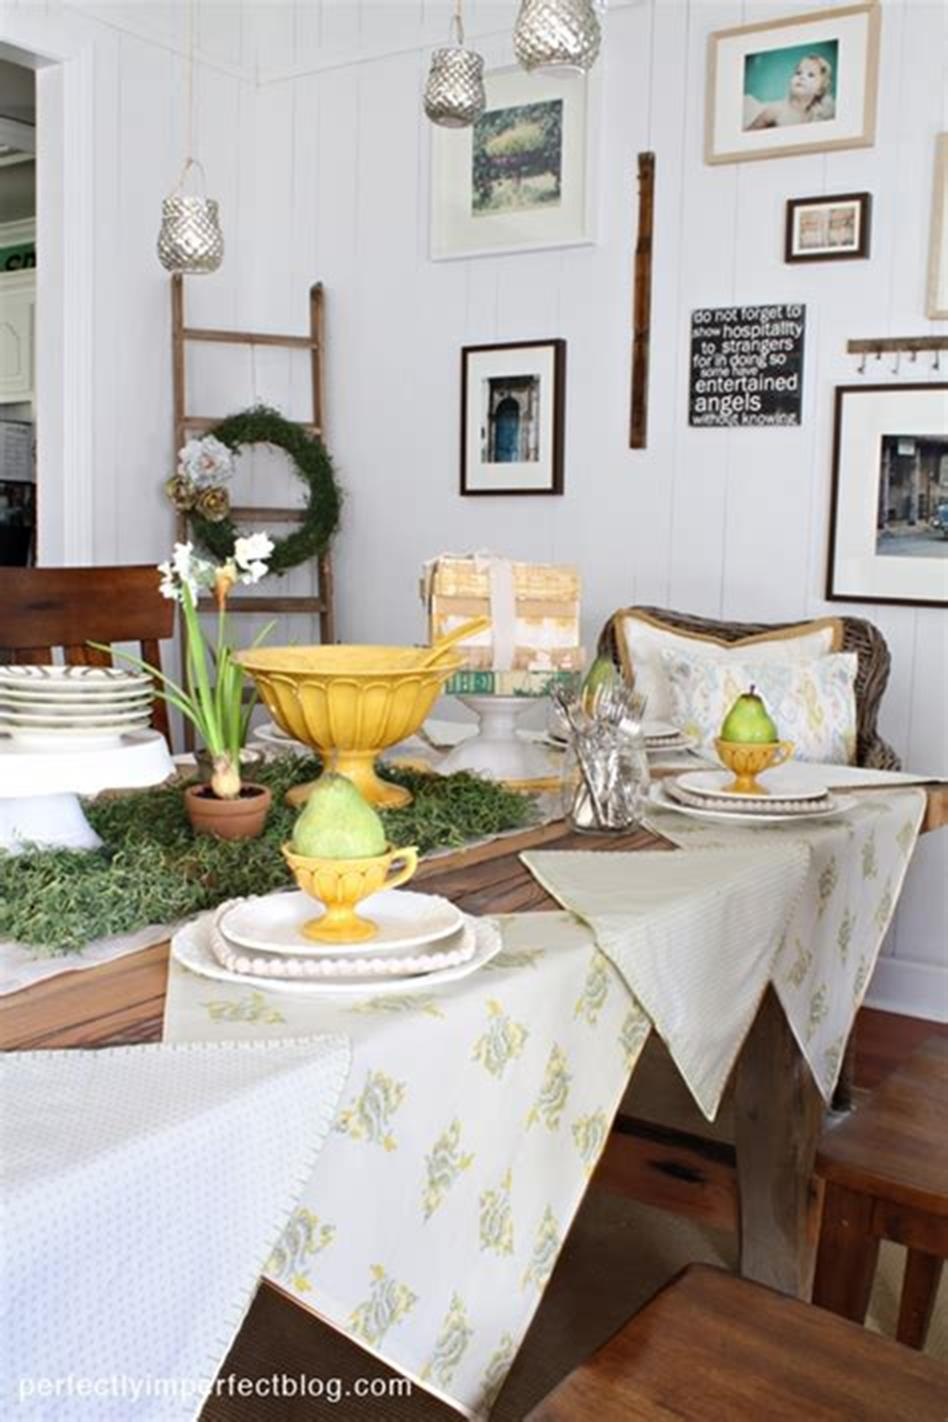 35 Stunning Spring Kitchen and Dining Room Decorating Ideas 2019 8